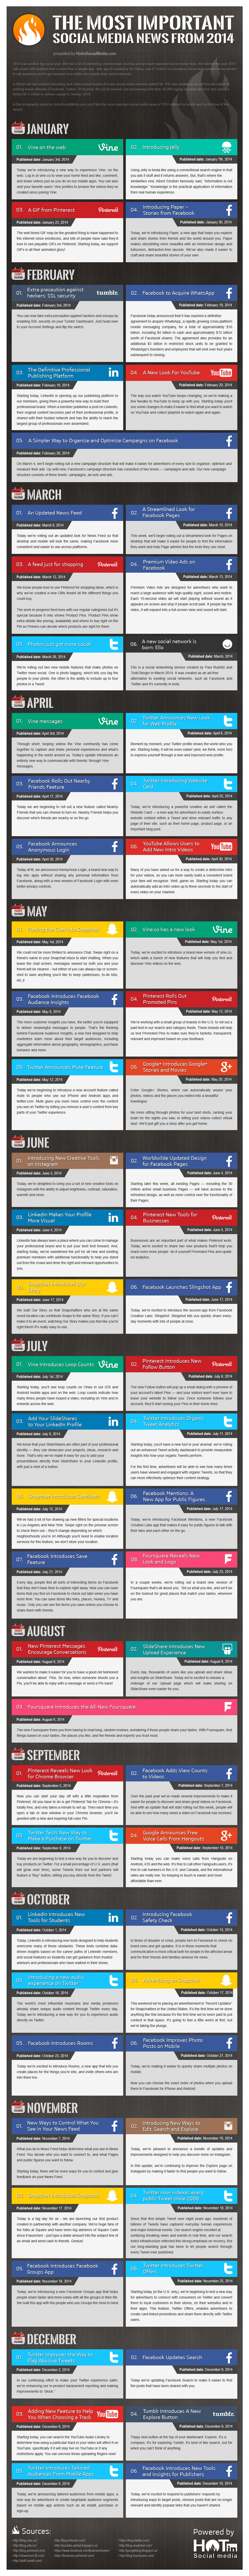 66 Most Important Social Media News From 2014 - #Facebook #Twitter #Pinterest #Instagram #GooglePlus #Vine #LinkedIn #Snapchat #Foursquare #YouTube #Tumblr